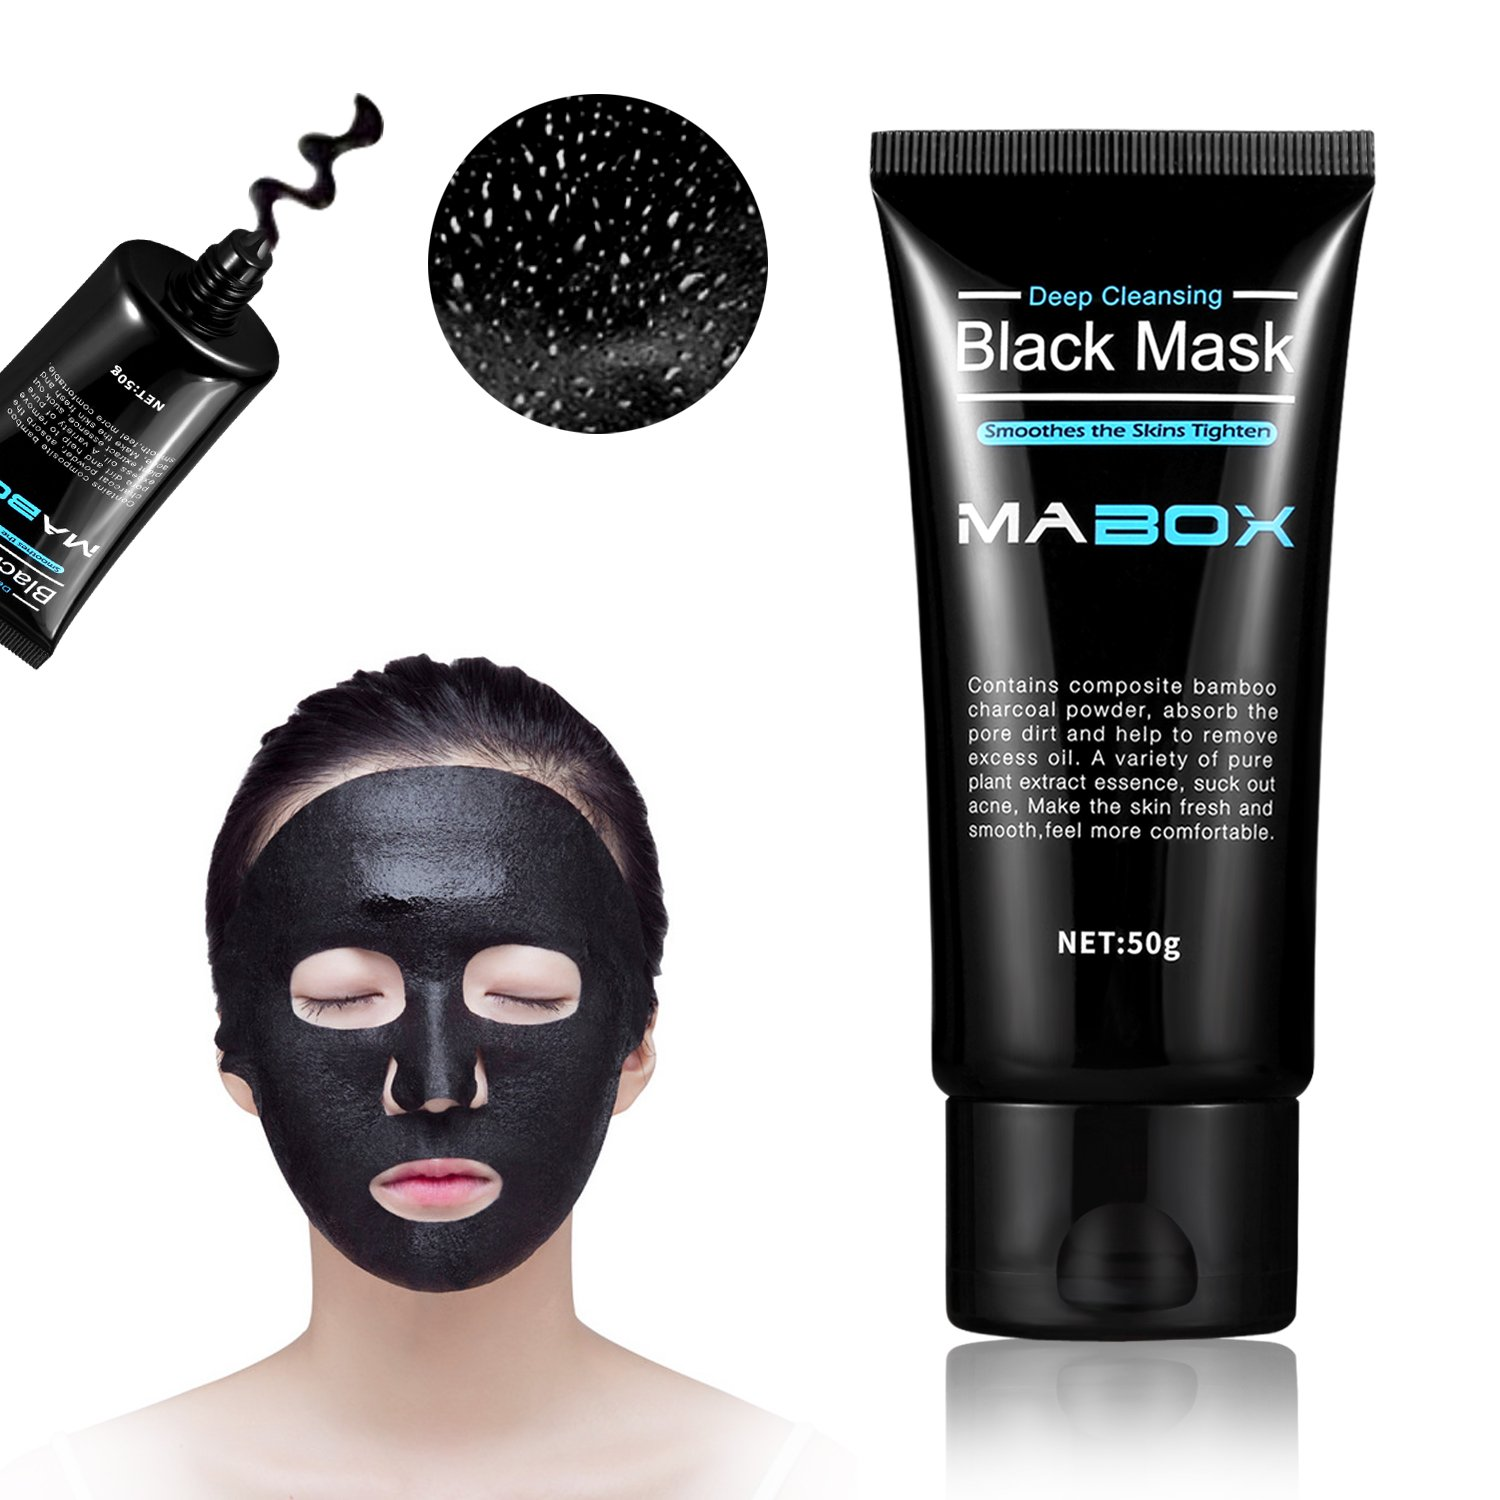 the blackhead mask